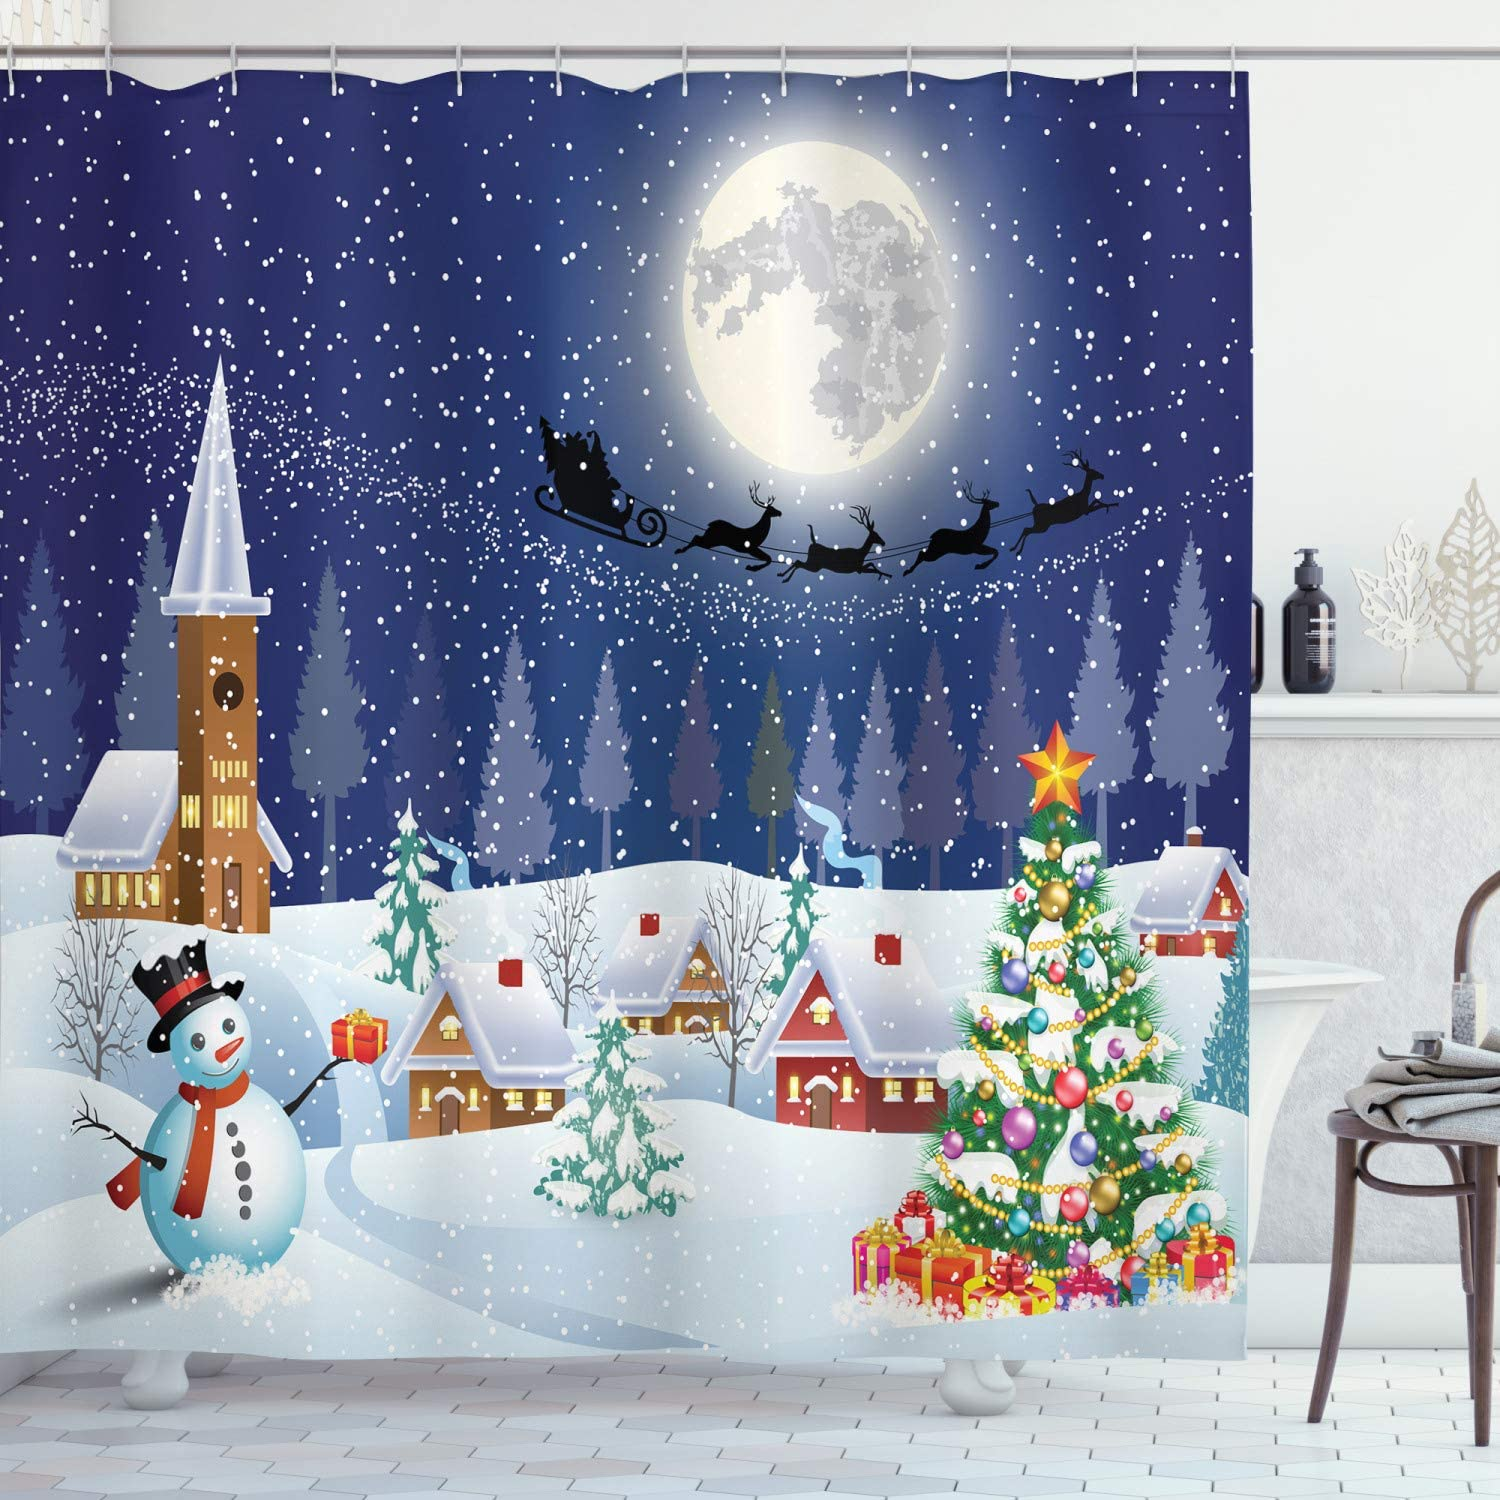 Ambesonne Christmas Shower Curtain, Winter Season Snowman Xmas Tree Santa  Sleigh Moon Present Boxes Snow and Stars, Fabric Bathroom Decor Set with